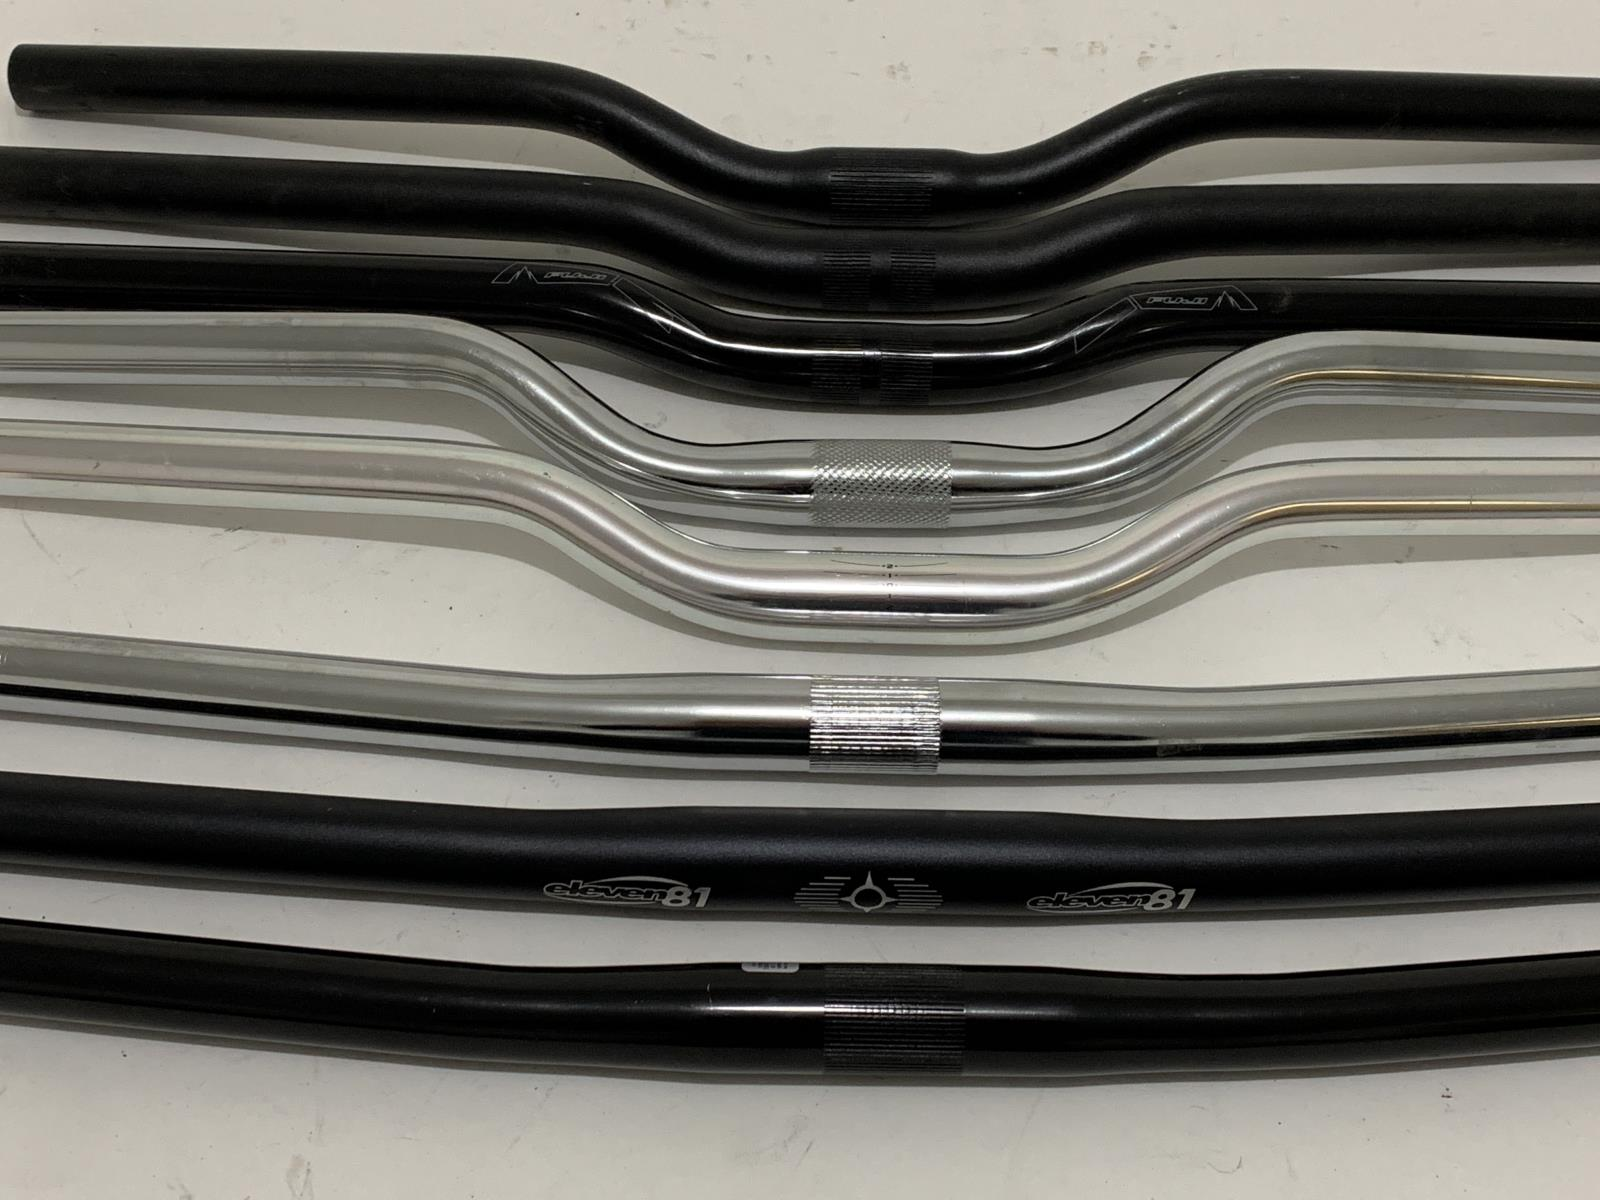 Lot of 8 Flat and Riser Steel Aluminum Bike Handlebars 25.4mm MTB New Old Stock